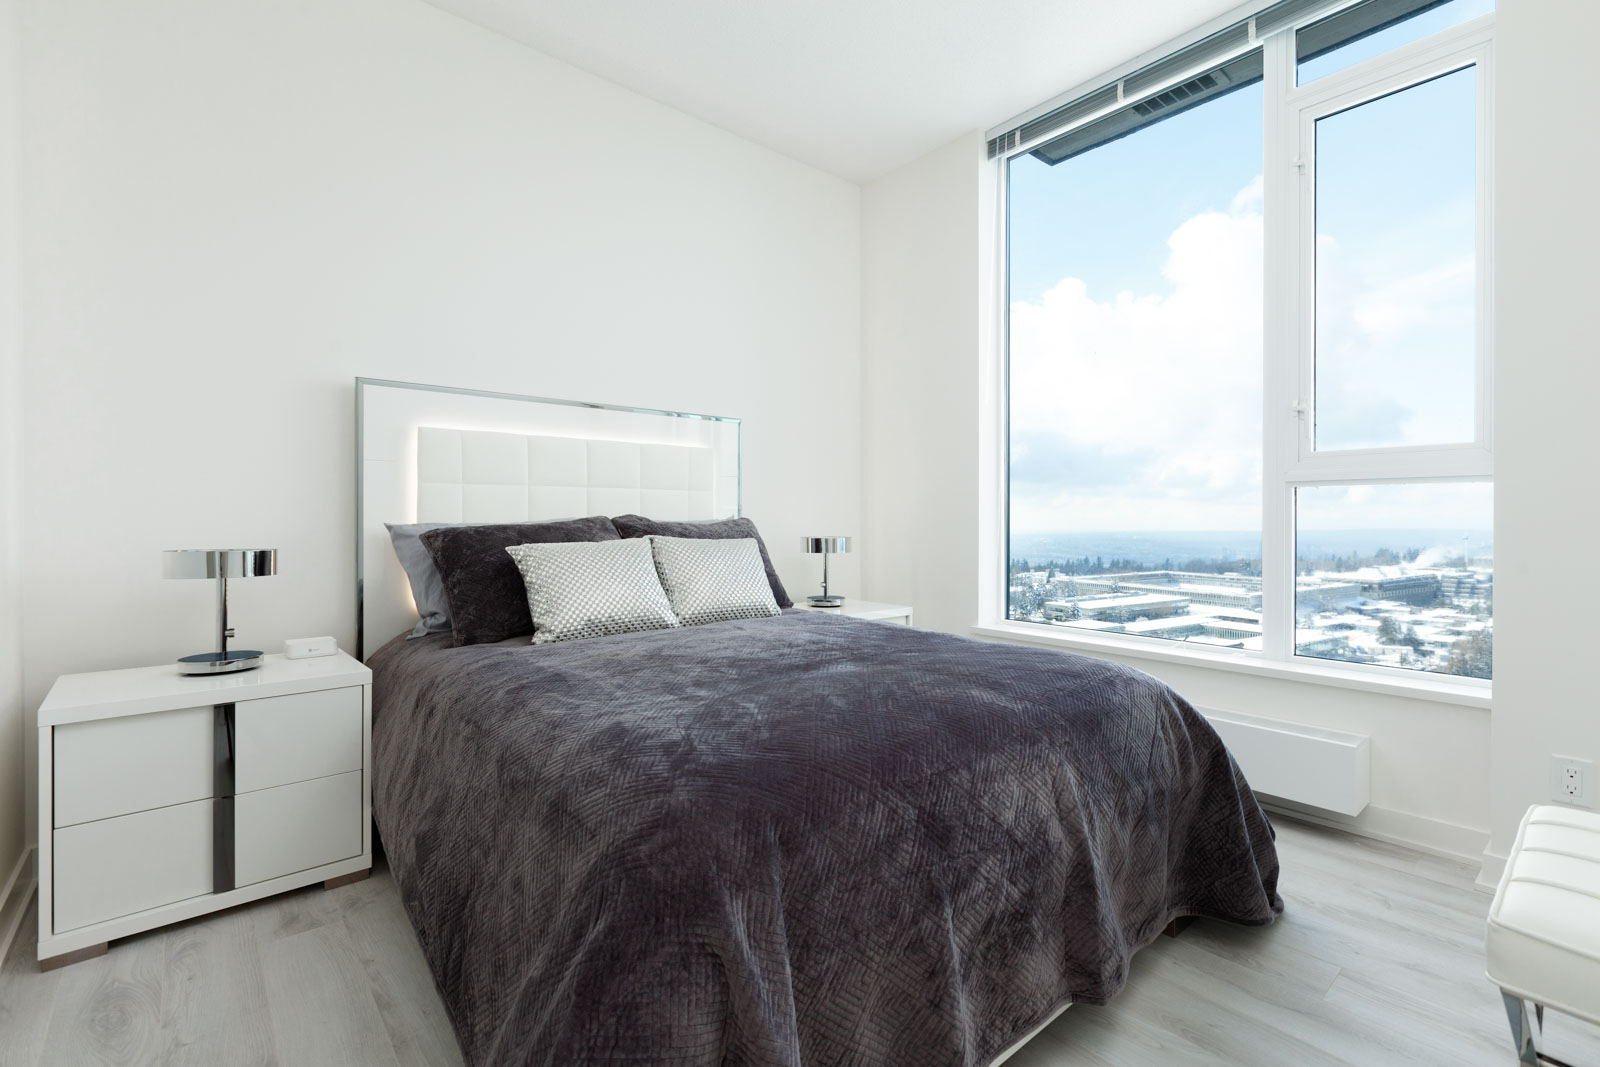 Bedroom with view at Univercity penthouse